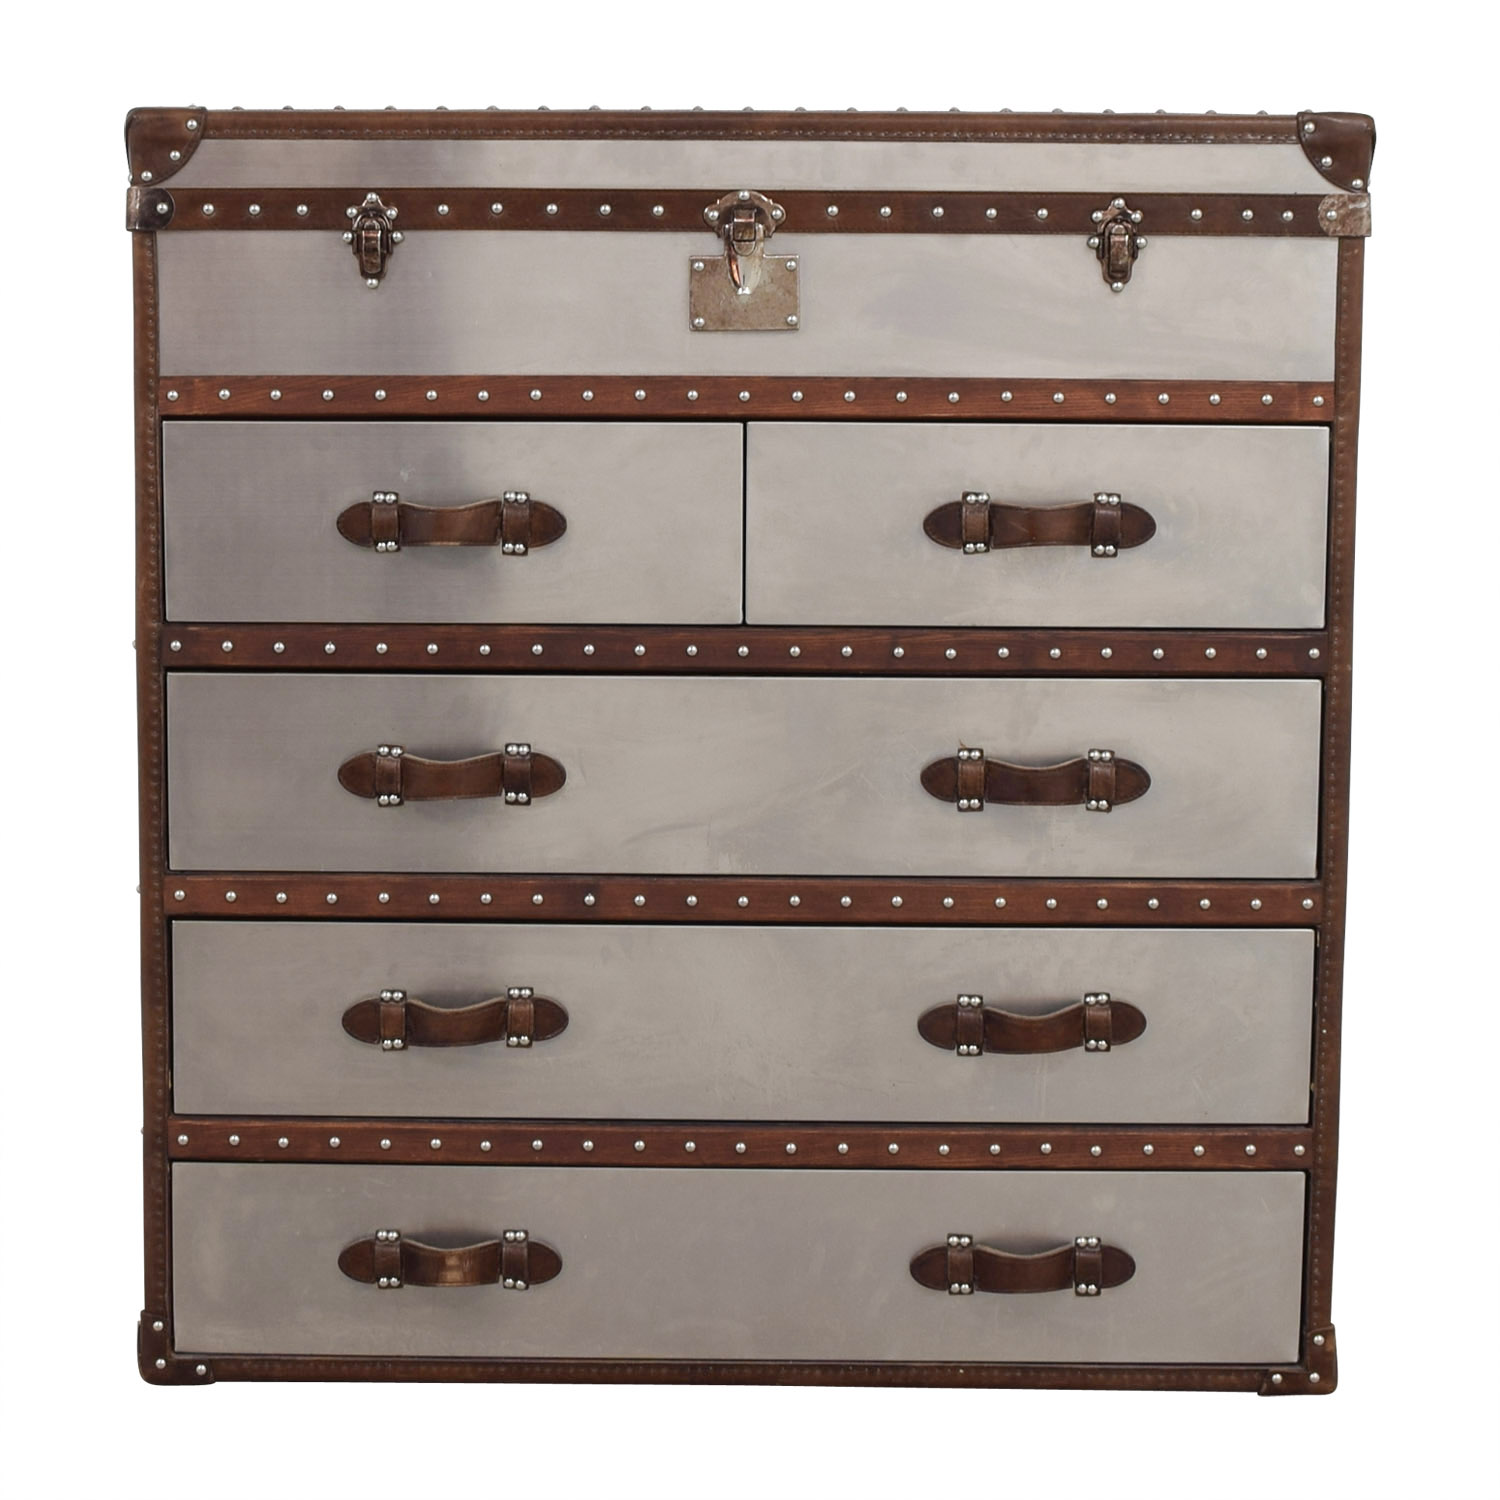 Restoration Hardware Restoration Hardware Mayfair Steamer Chest on sale